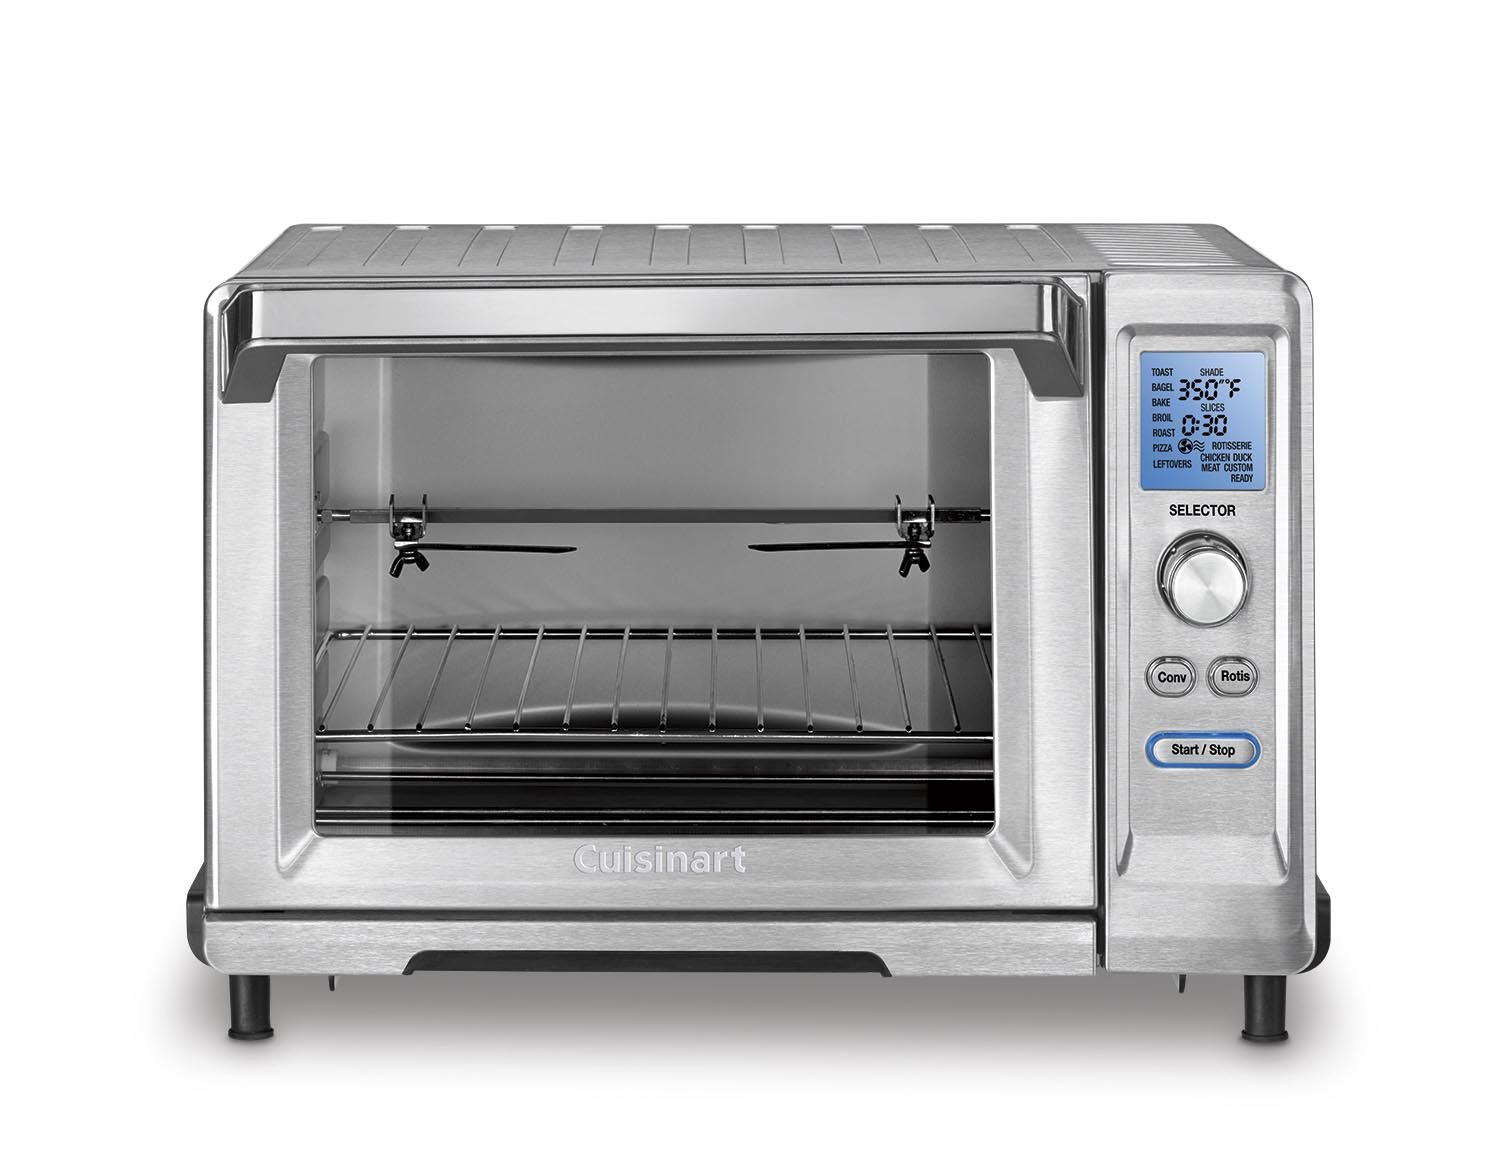 Cuisinart TOB-200N Rotisserie Convection Toaster Oven, , Stainless Steel by Cuisinart